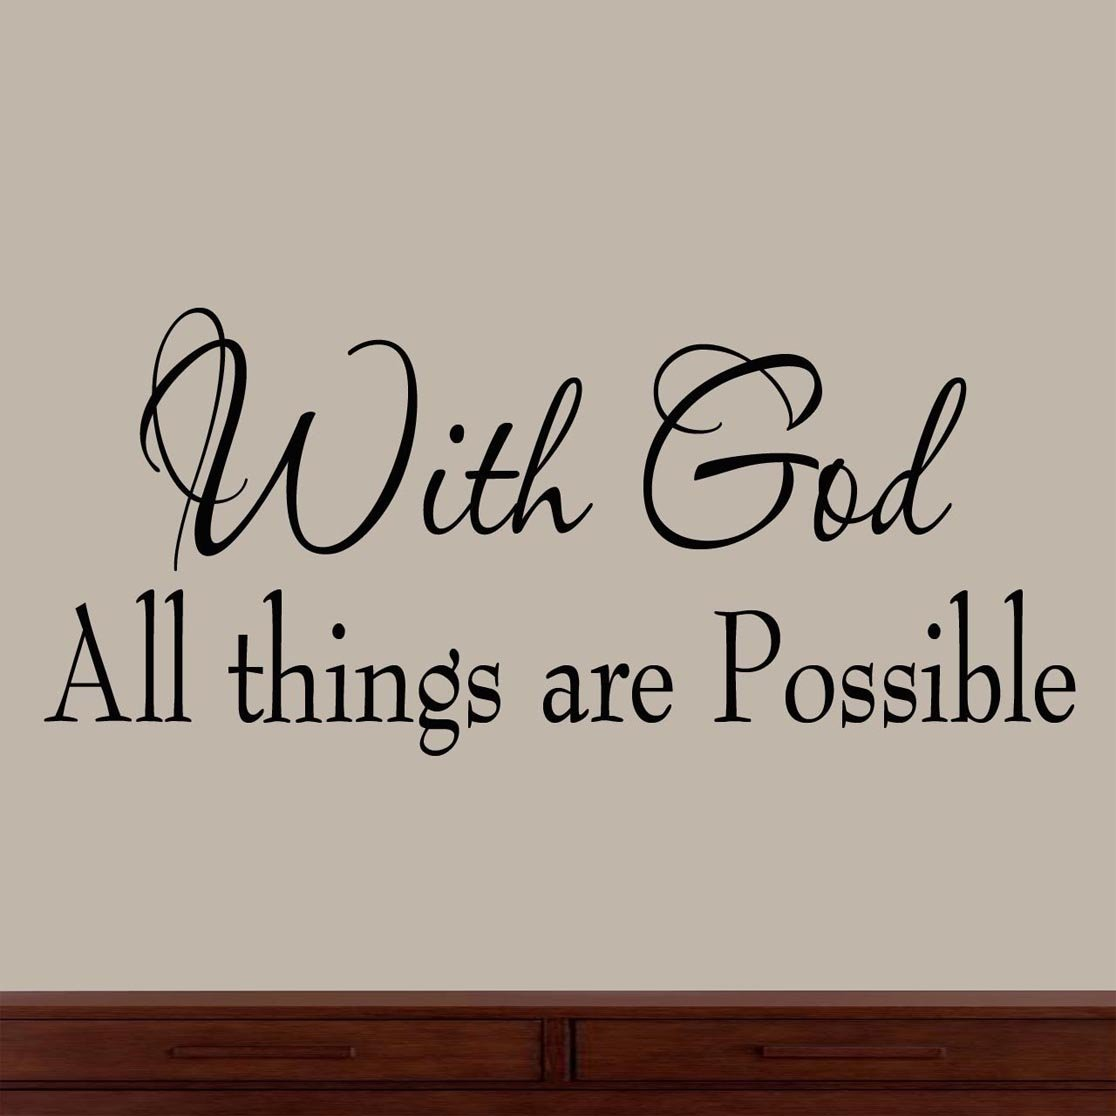 Delightful Amazon.com: With God All Things Are Possible Faith Wall Decals Religious  Quotes Family Scripture Home Decor Christian Vinyl Wall Art: Home U0026 Kitchen